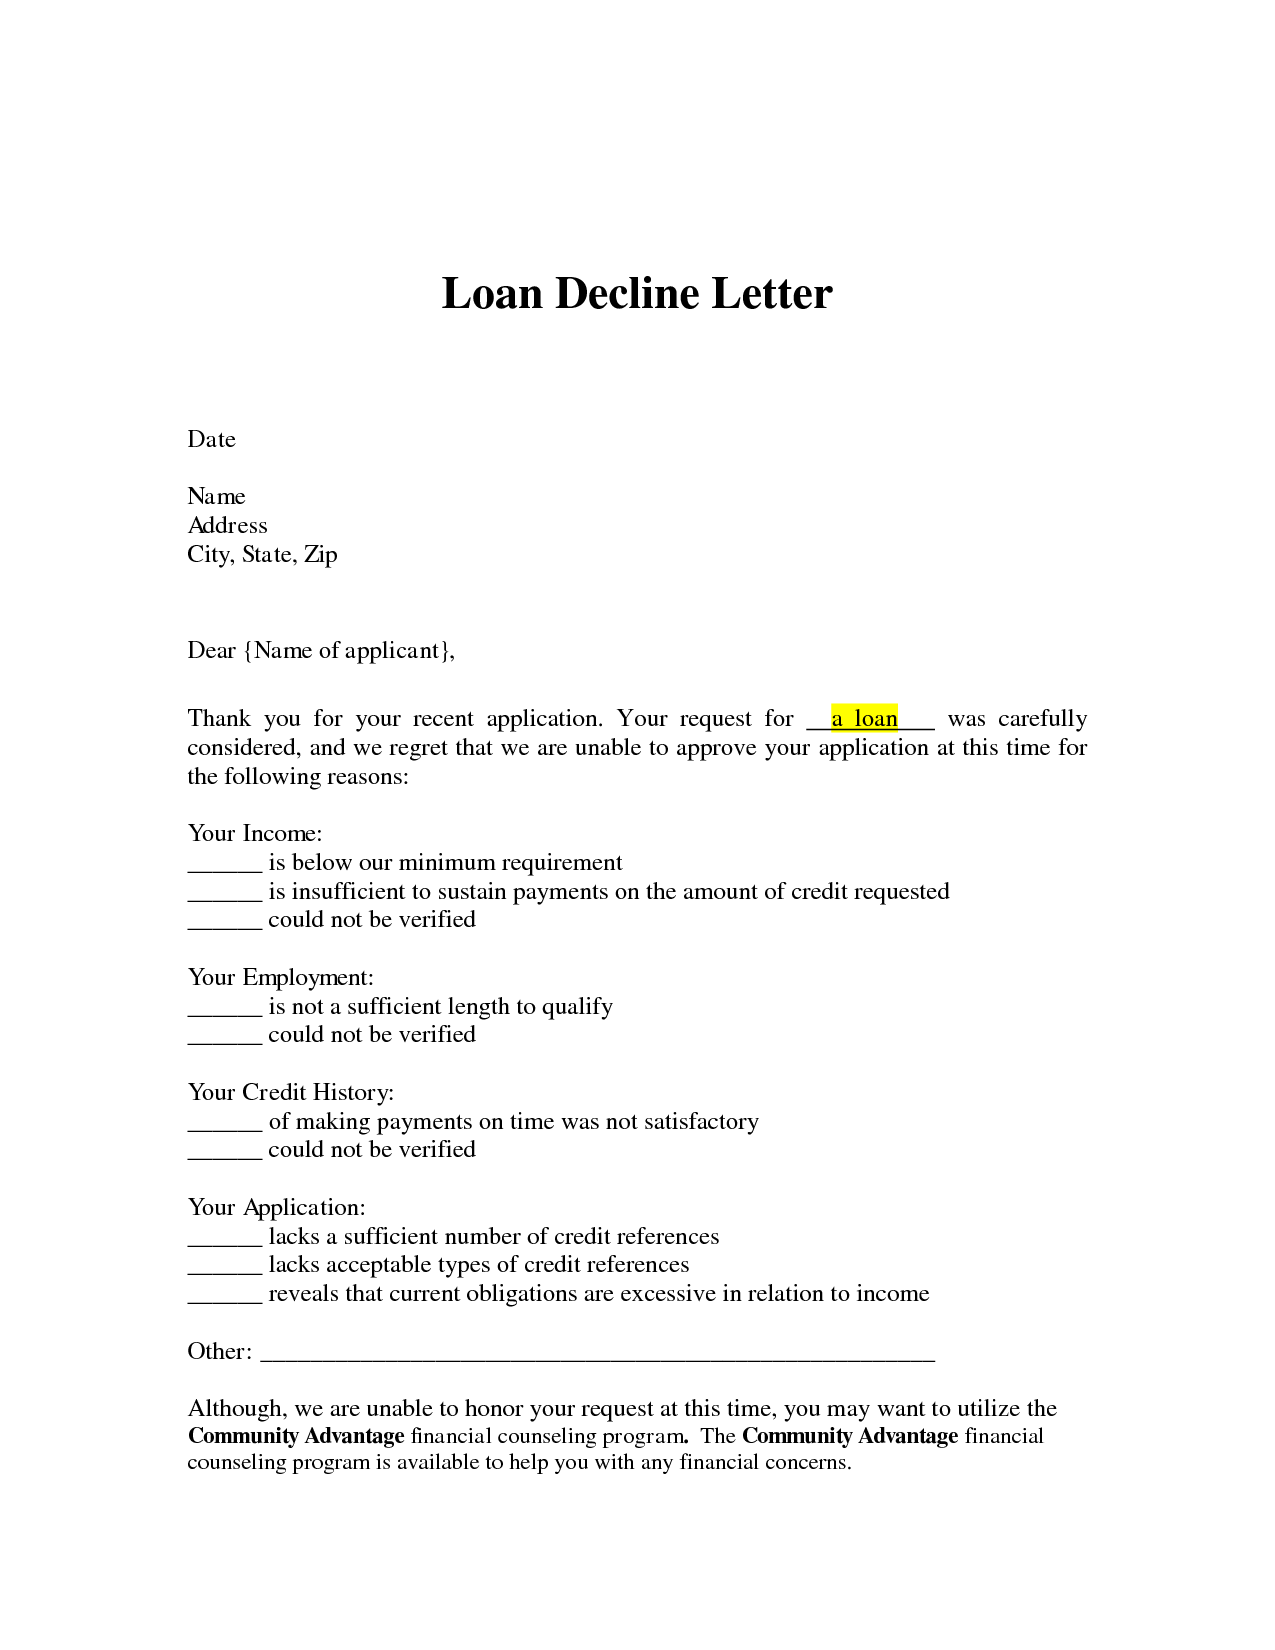 loan decline letter loan denial letter arrives you can use that loan decline letter loan denial letter arrives you can use that information to see